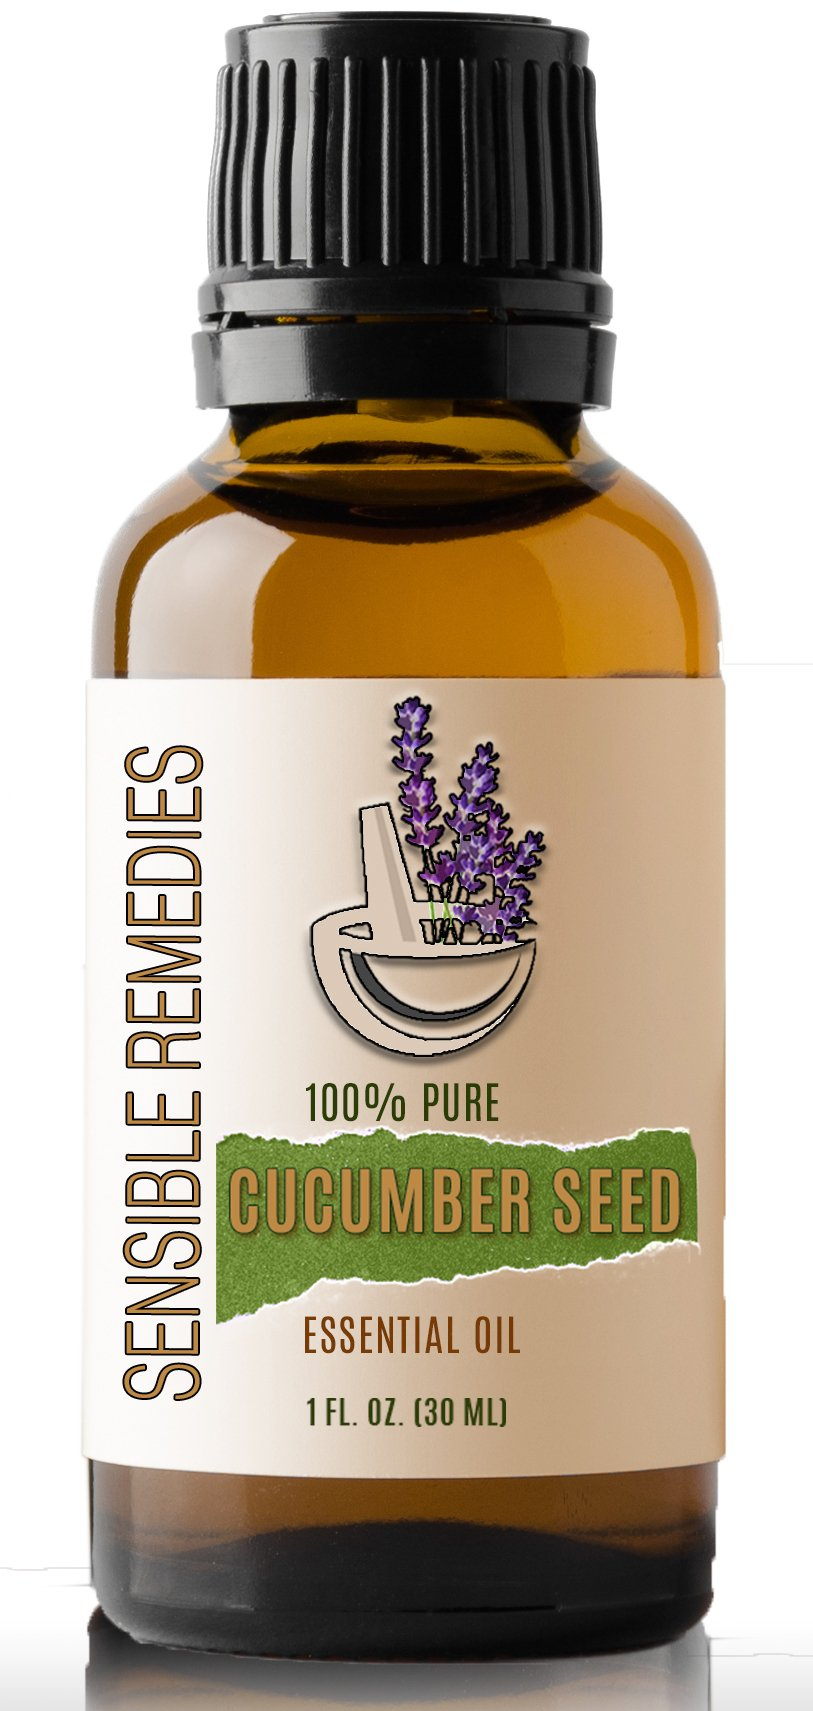 Cucumber Seed Essential Oil